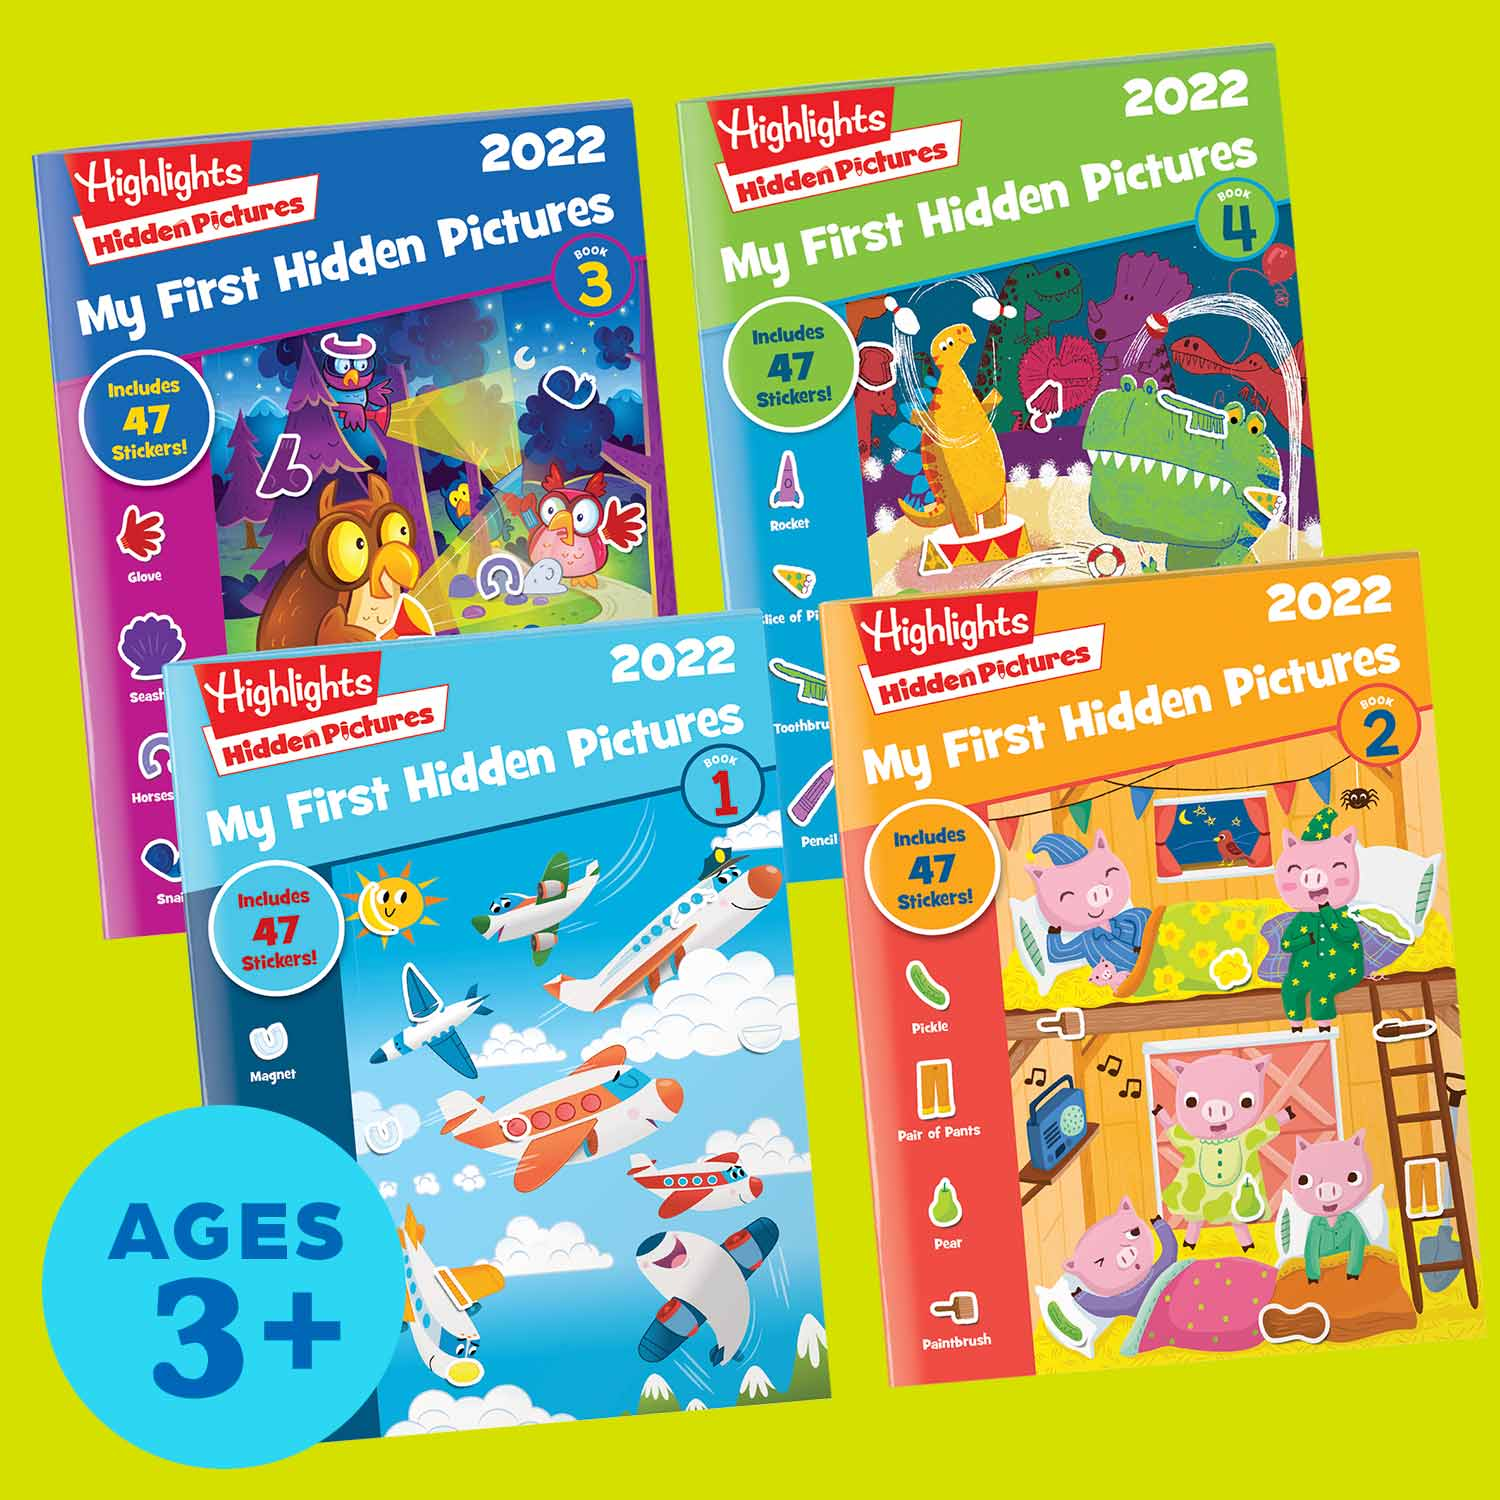 2022 My First Hidden Pictures 4-Book Set